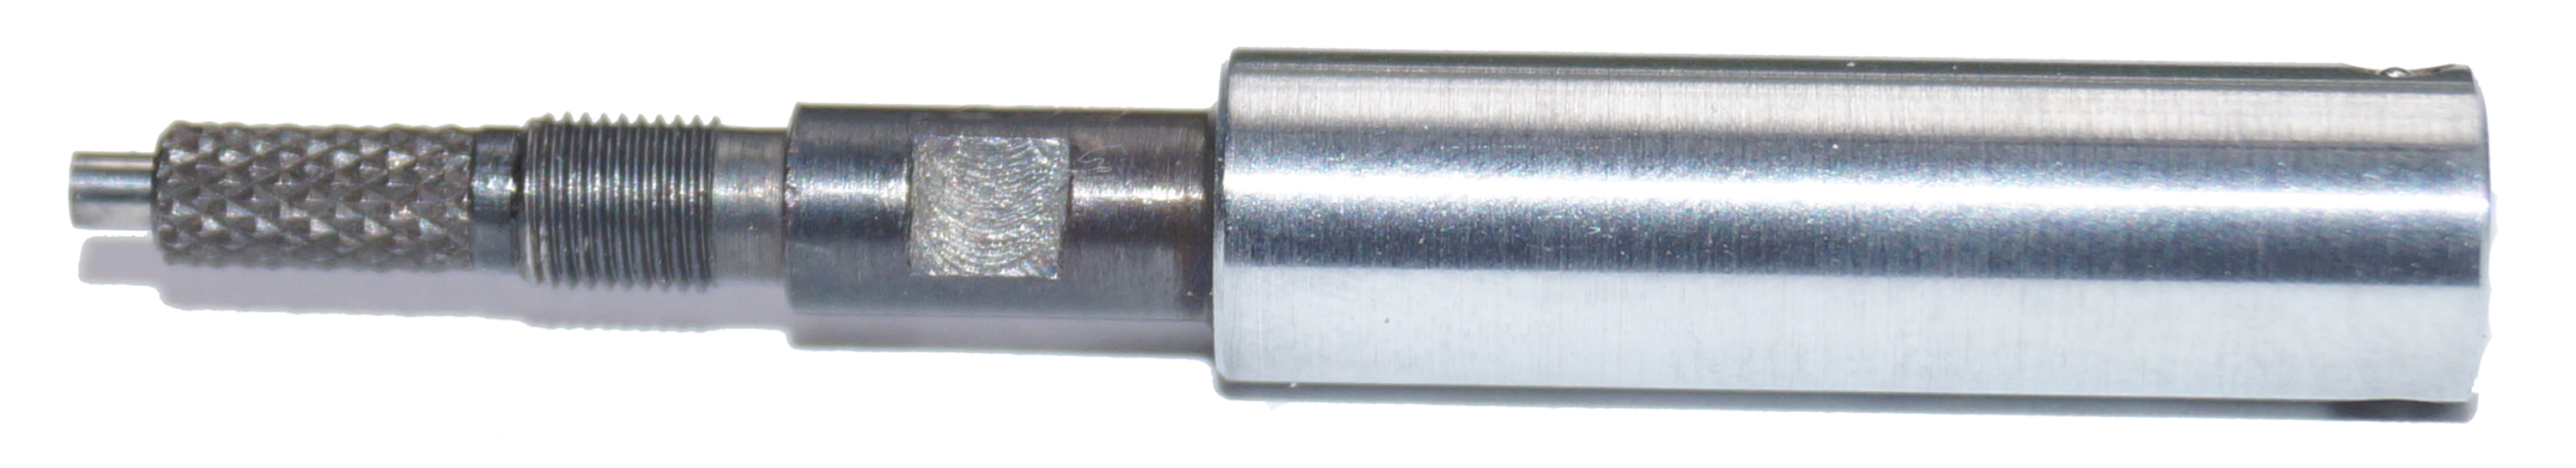 Indicating Plug, 0.25 Inch Dyer, Mahr, Two Point Contact